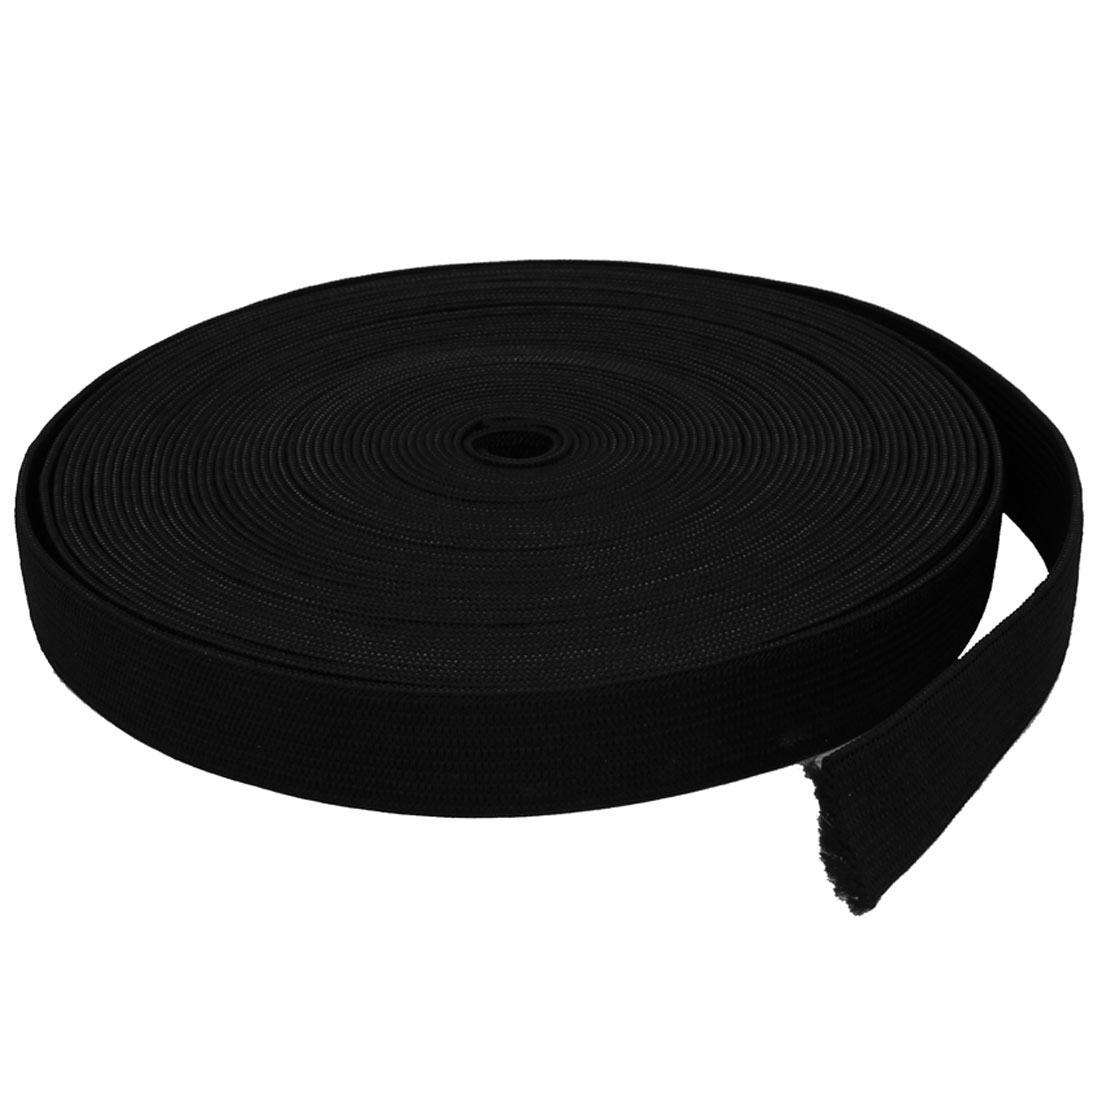 Home Family Braided Elastic Band Roll 14cm Dia Black for Tailoring Clothes Pants